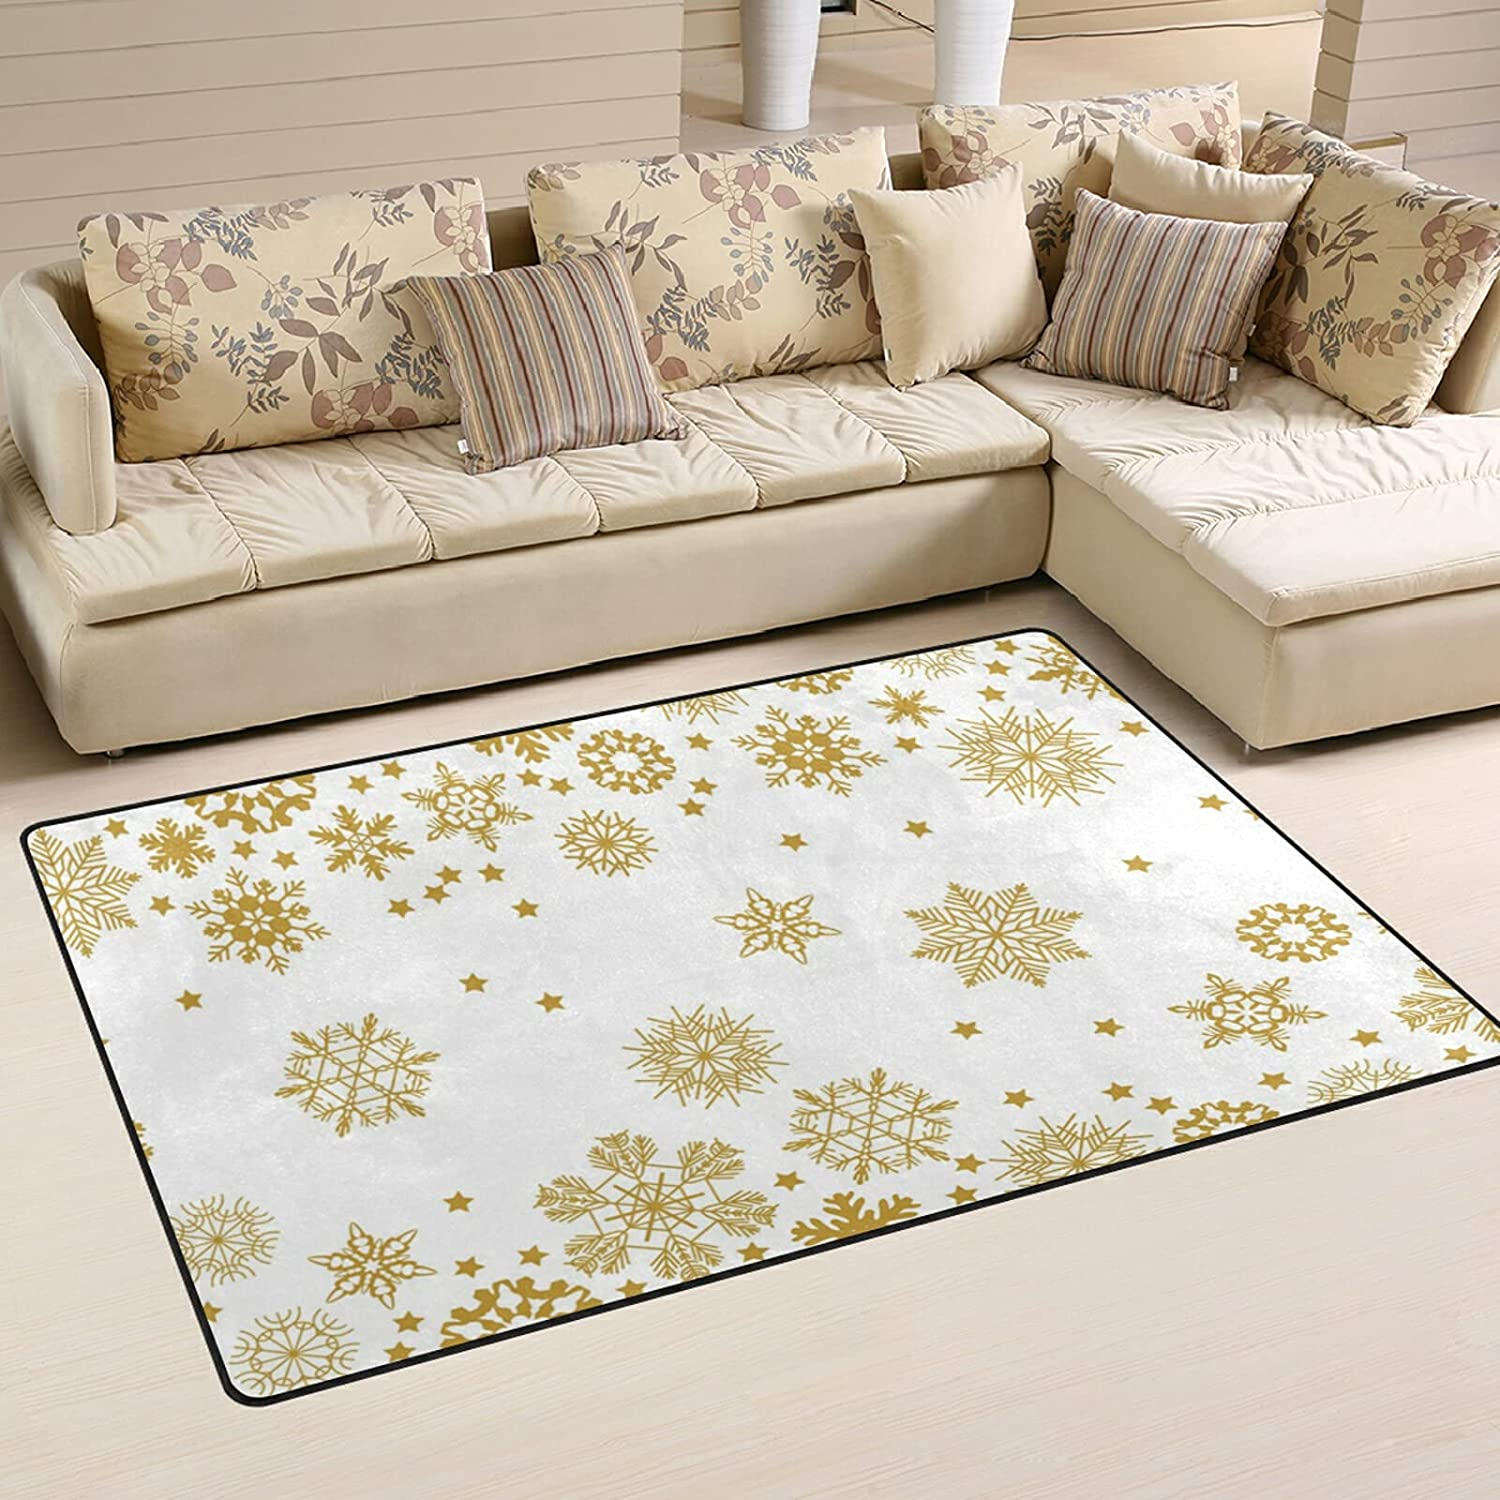 Christmas Gold Snowflake Large Safety and trust Soft Playmat Rugs 5 popular Ru Area Nursery